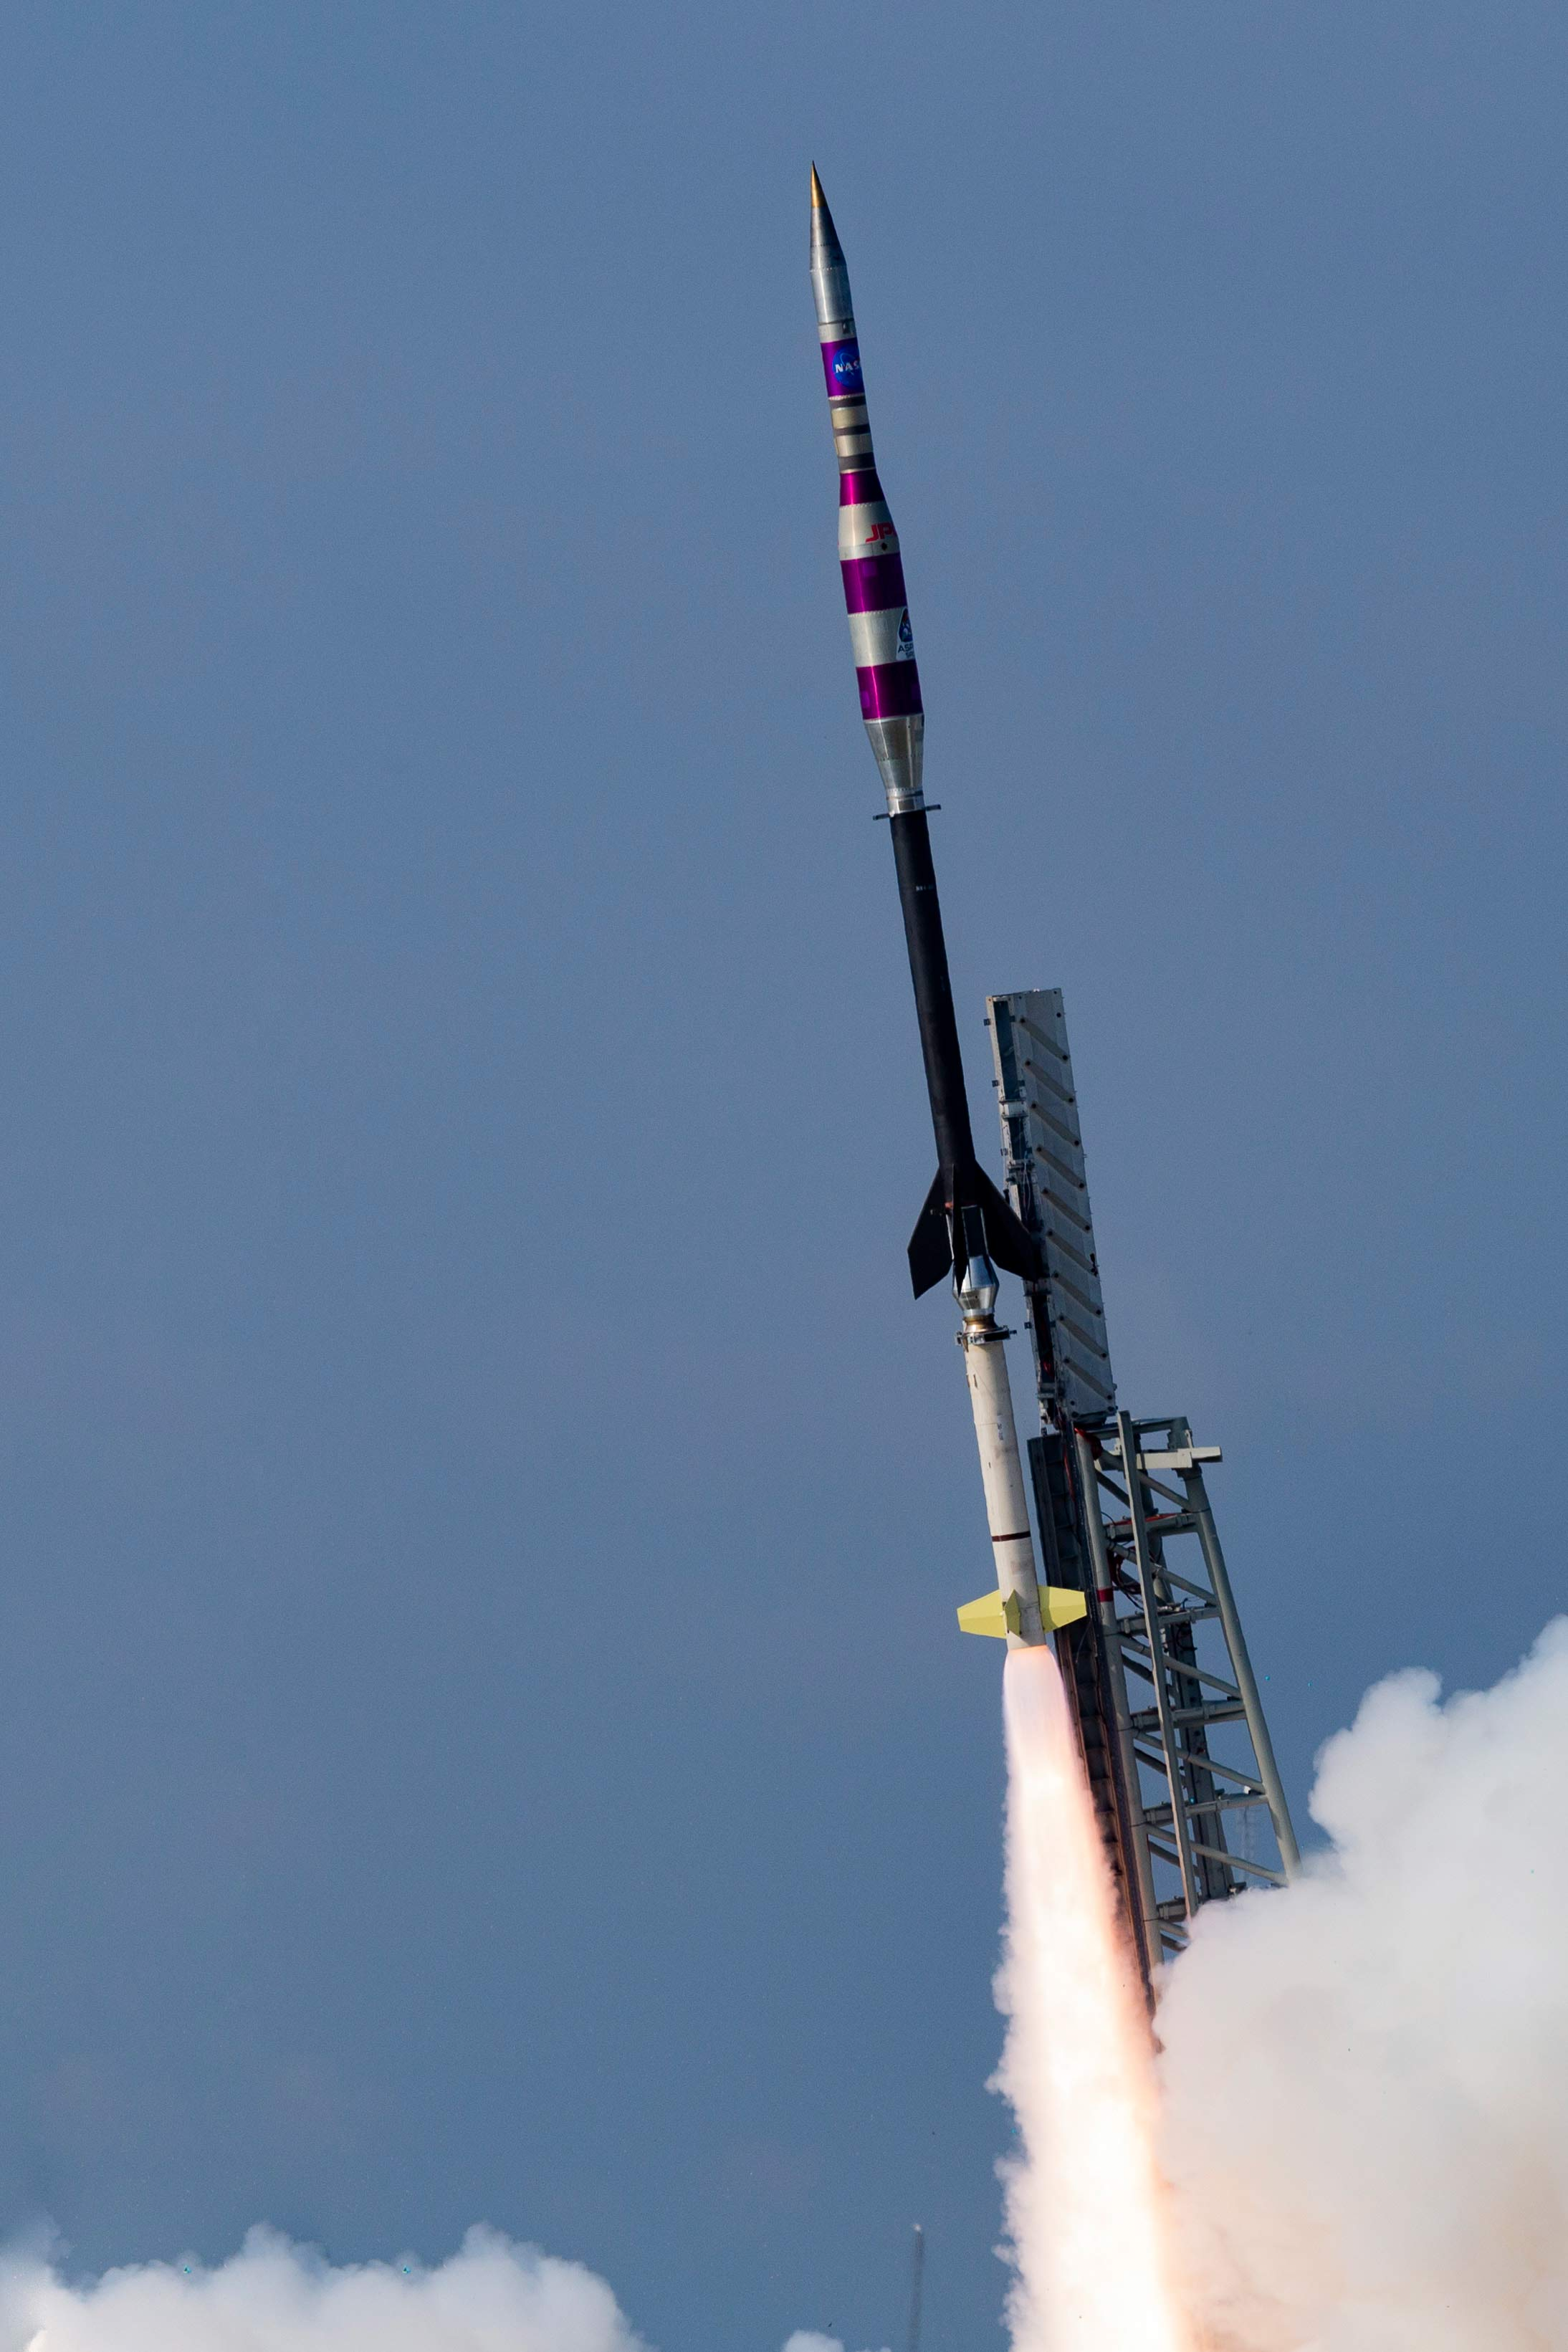 The 36.328 NR, Terrier-Black Brant sounding rocket launches from Wallops Island, Virginia, on September 7, 2018